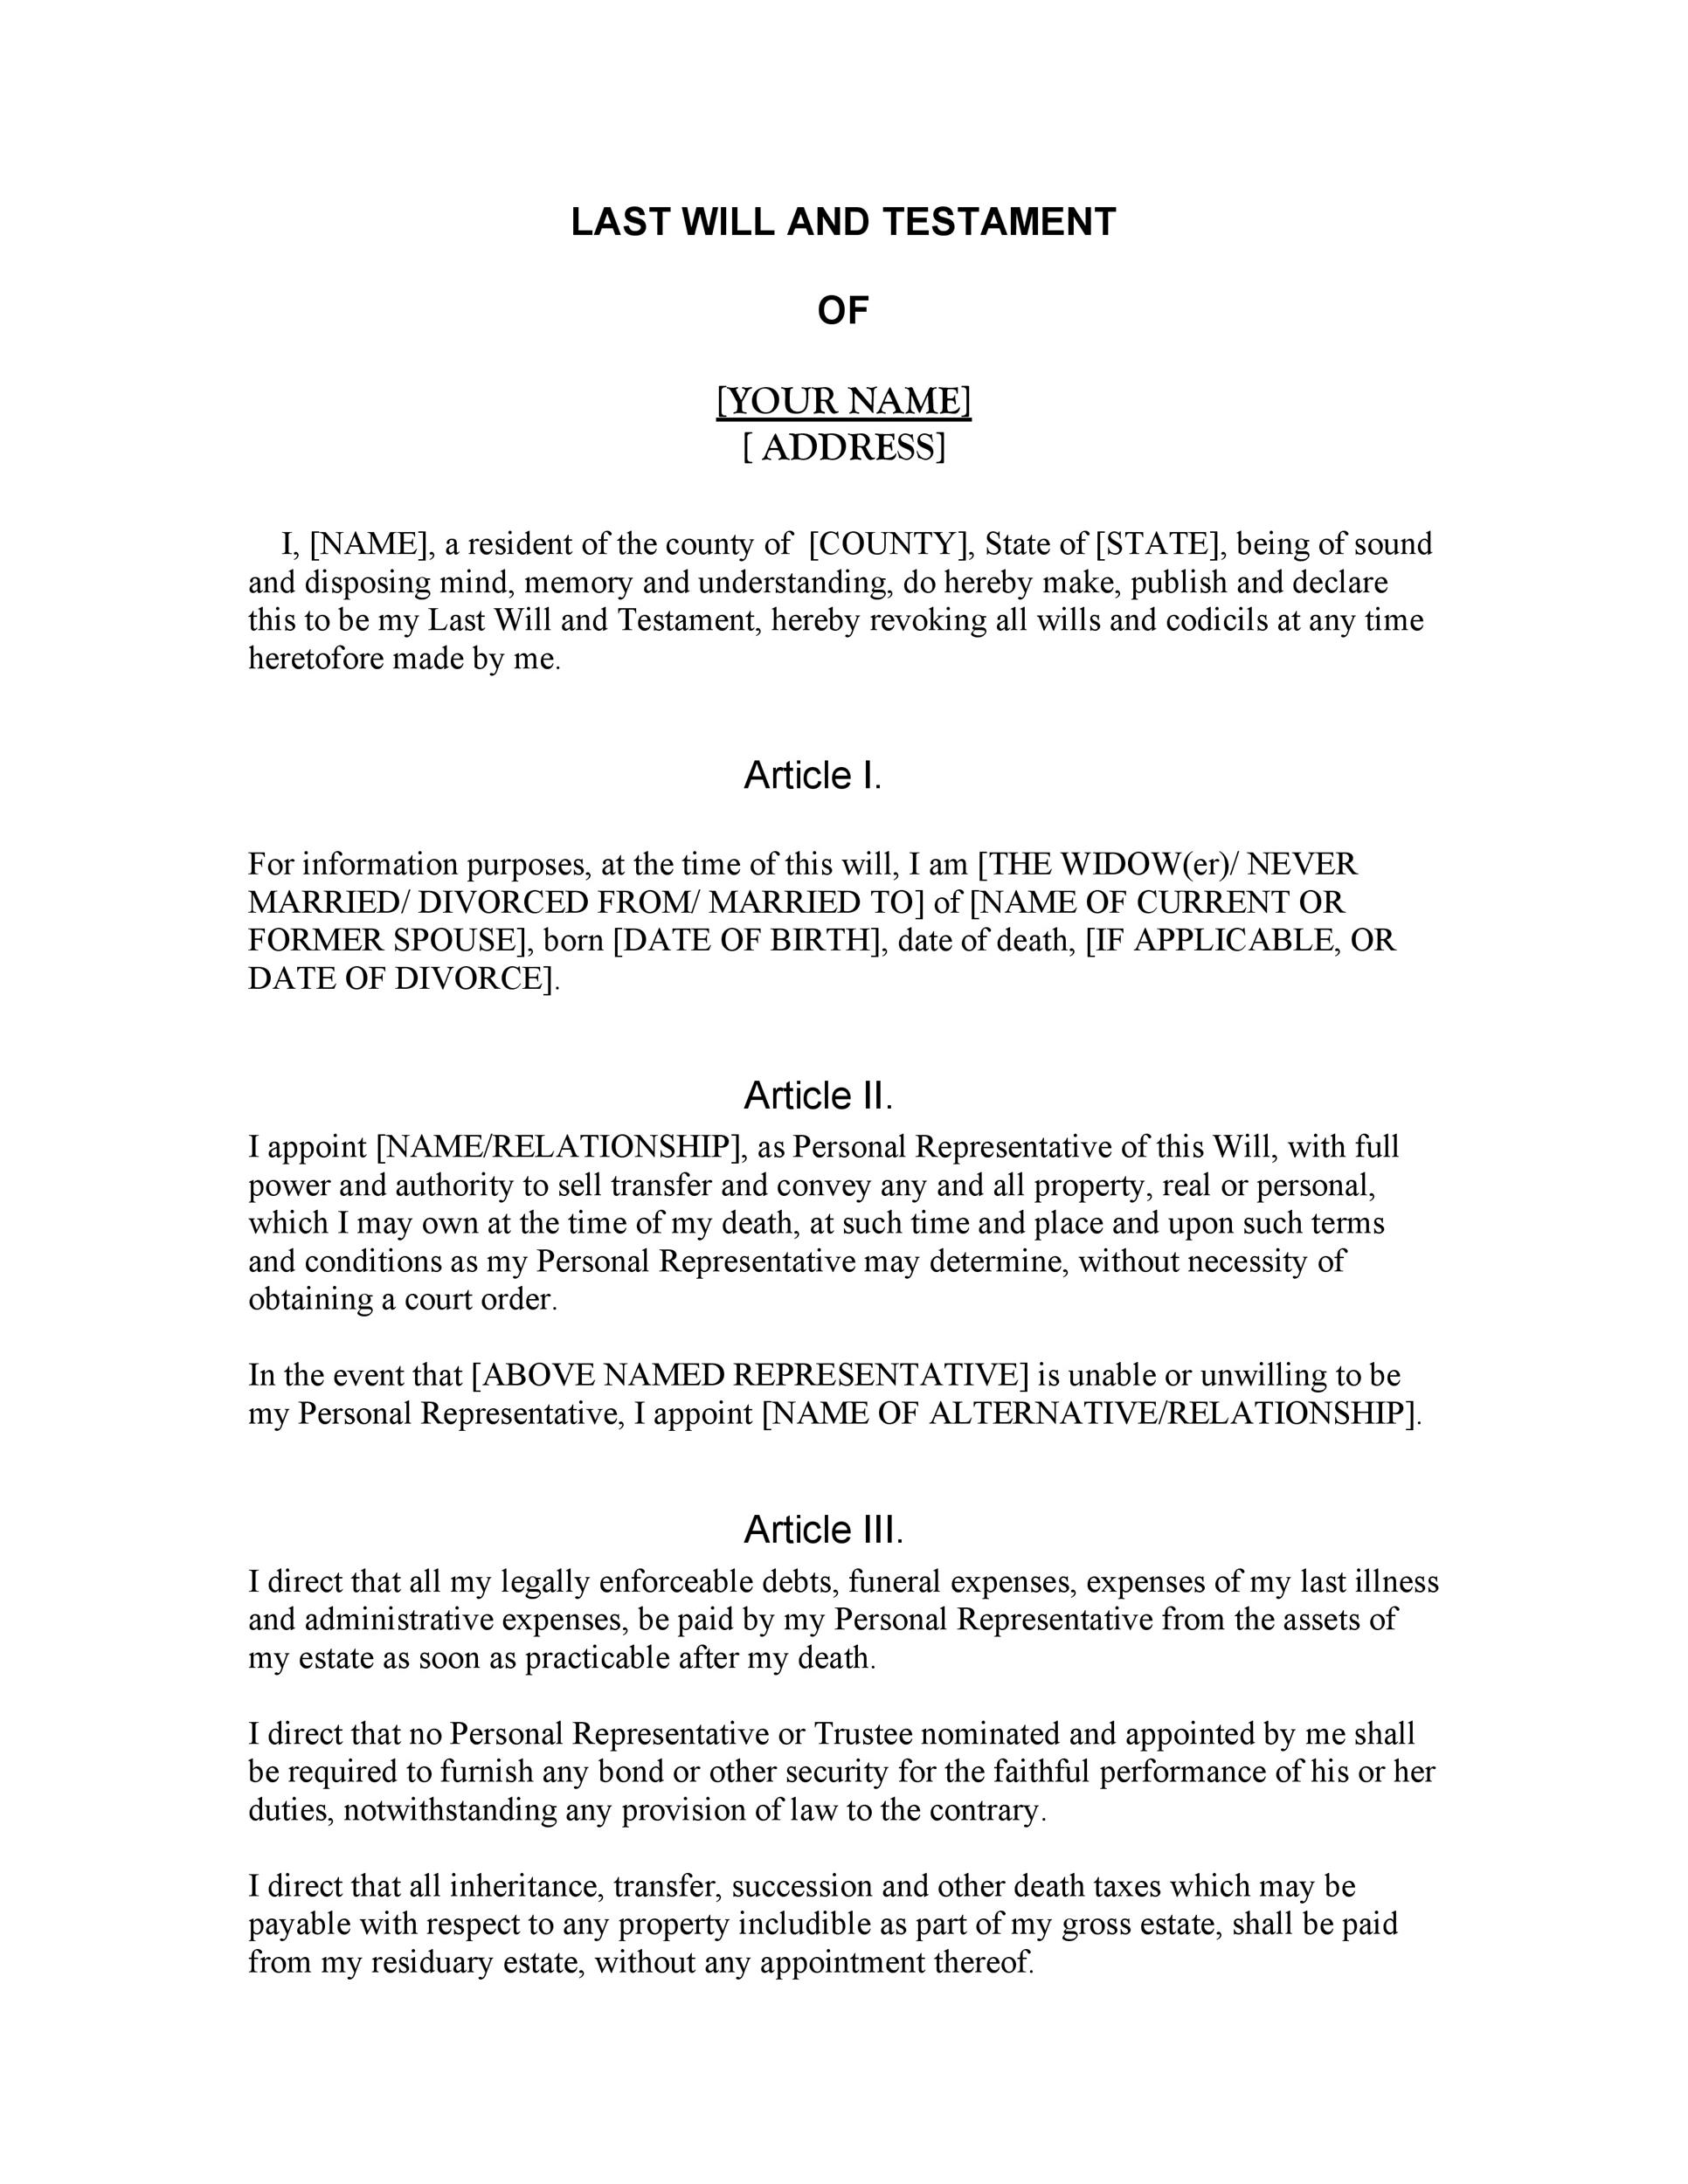 Sample Last Will And Testament Form. 15+ Landlord Reference Letter ...